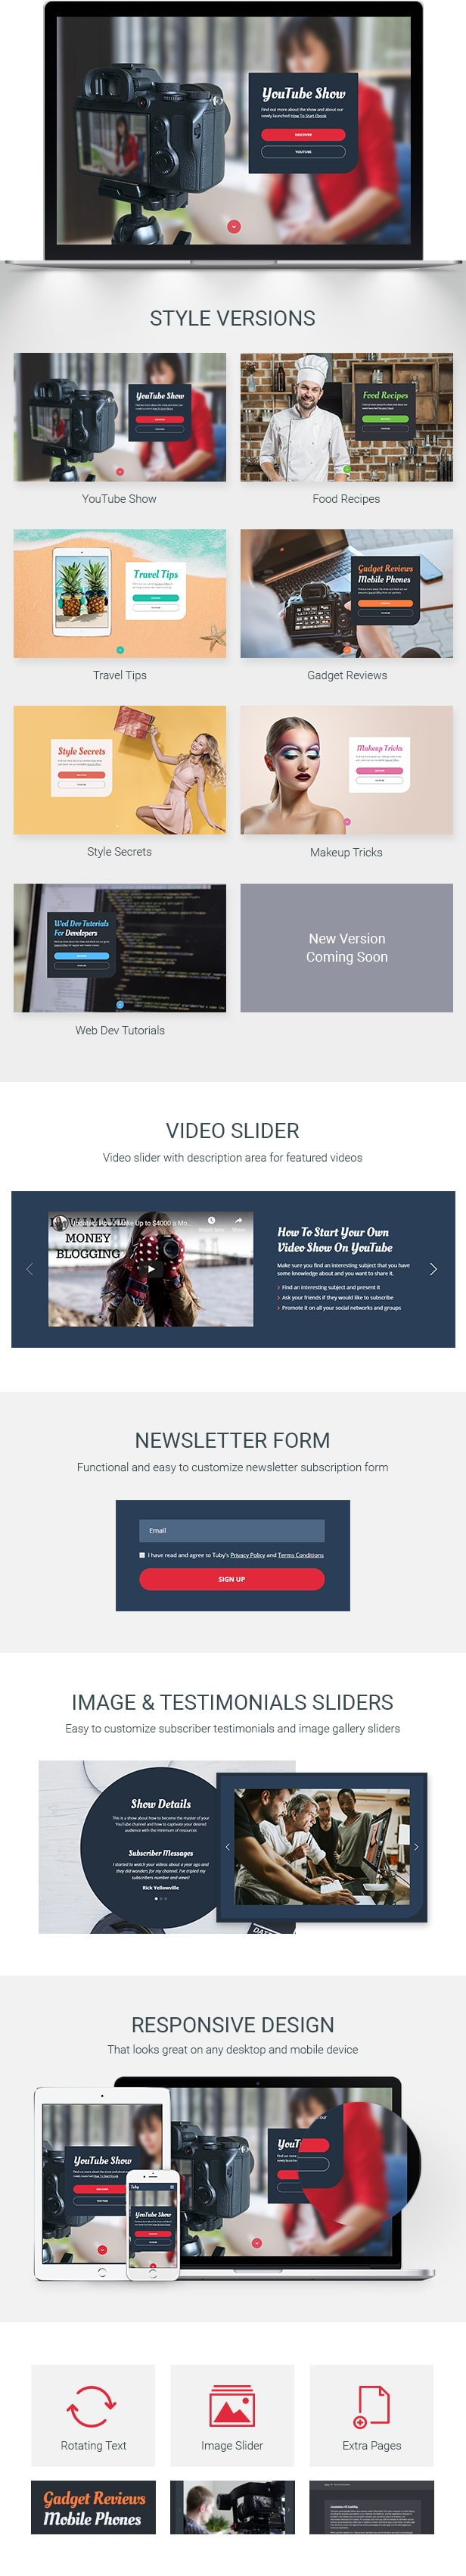 Tuby - Plantilla YouTube Show Landing Page